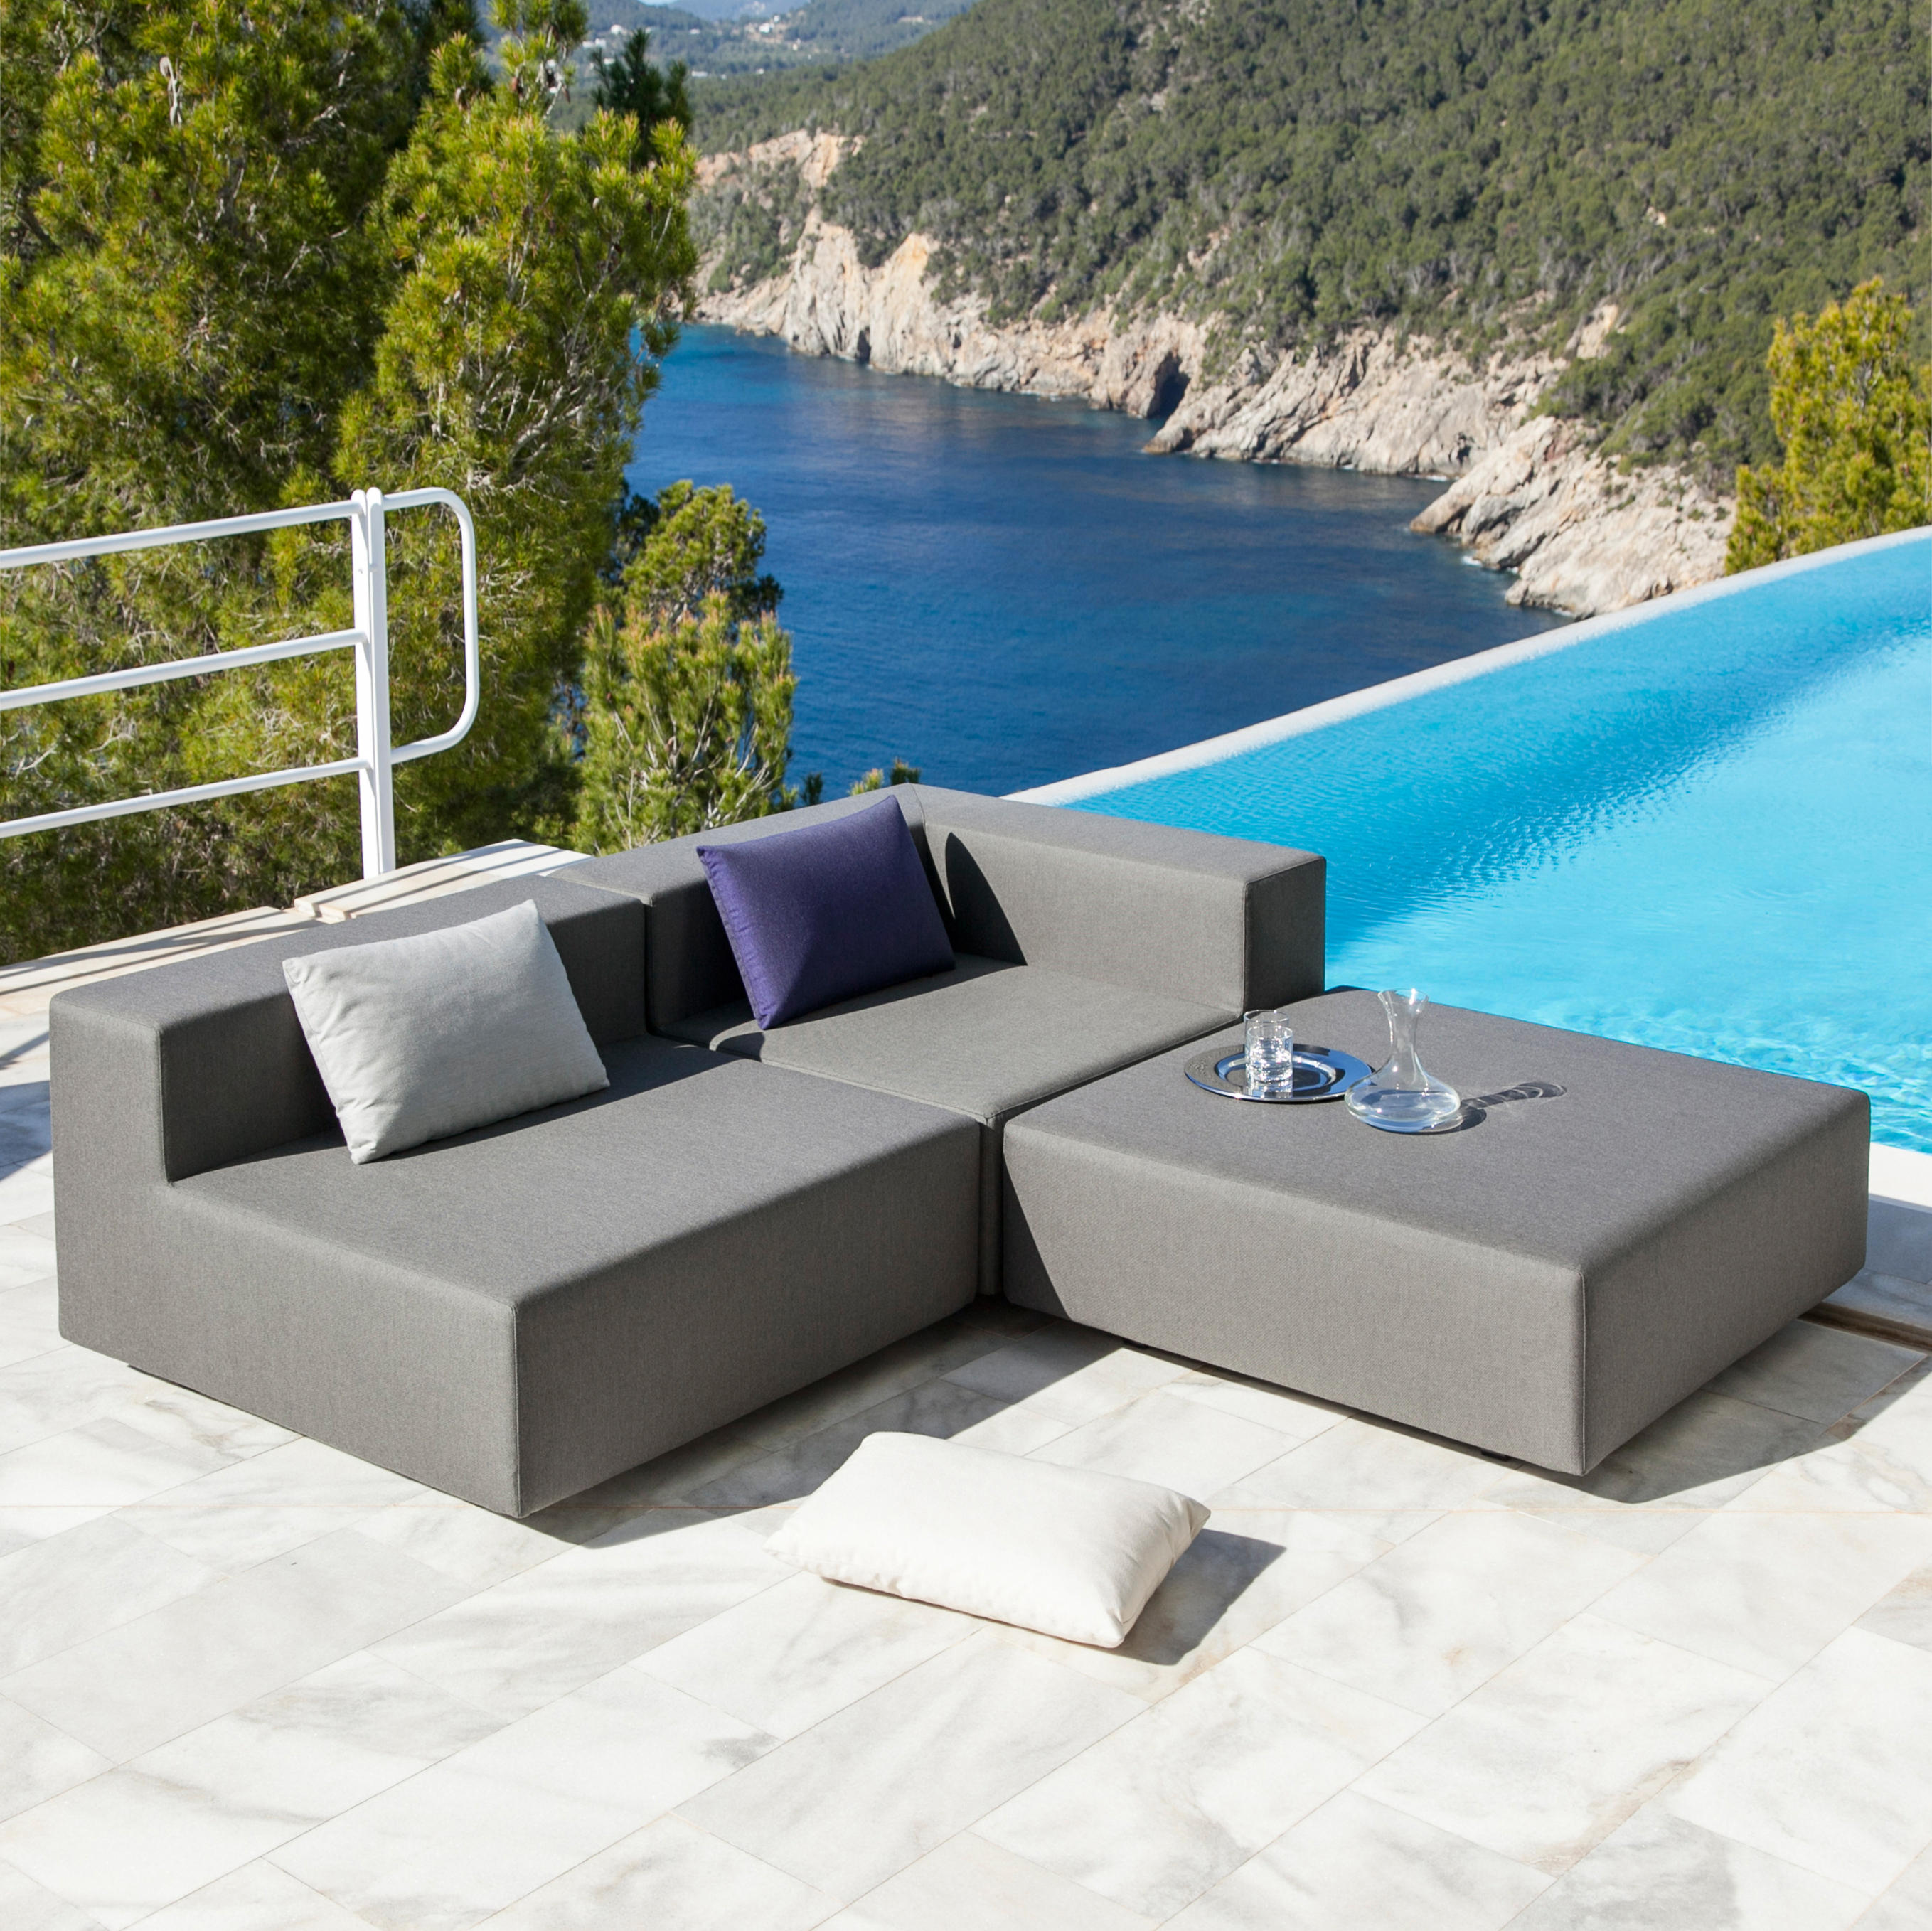 loop sofa garden sofas from april furniture architonic 1 push ad nr2 architonic 2 - Garden Furniture Lebanon